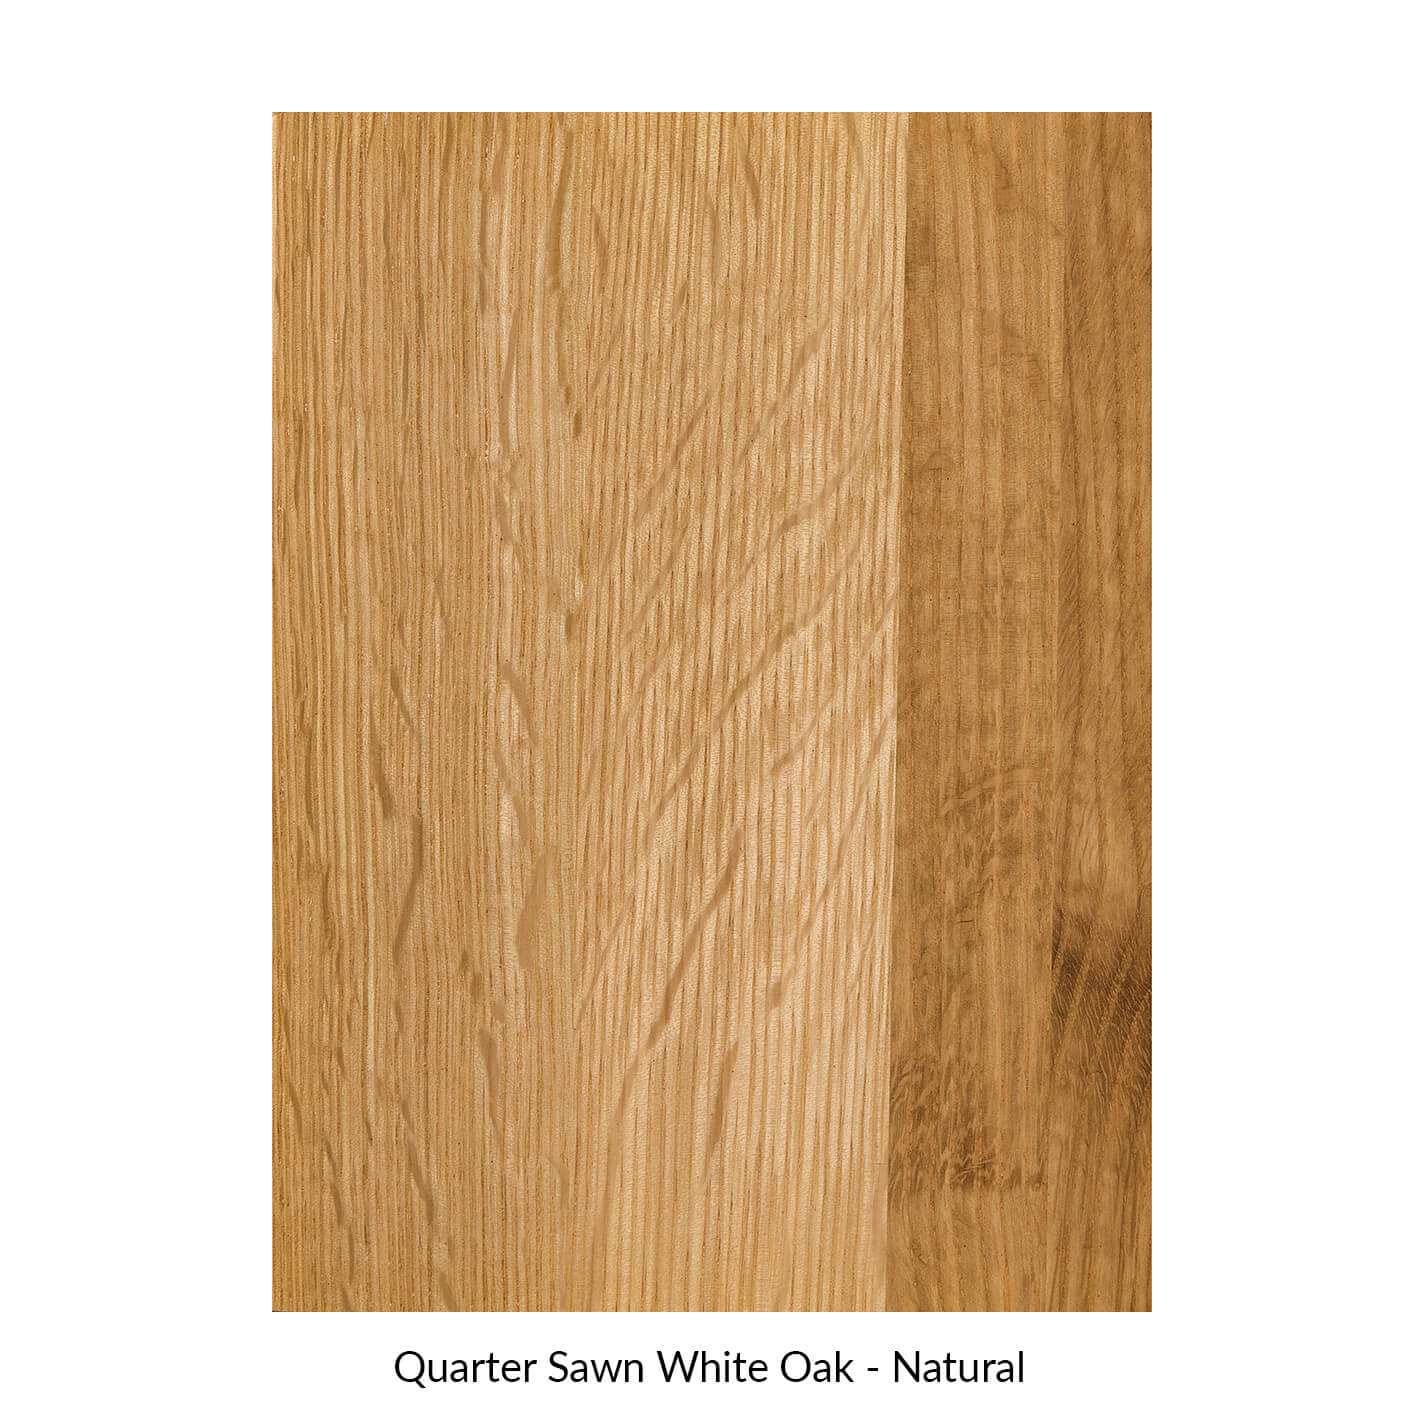 spectrum-quarter-sawn-white-oak-natural.jpg